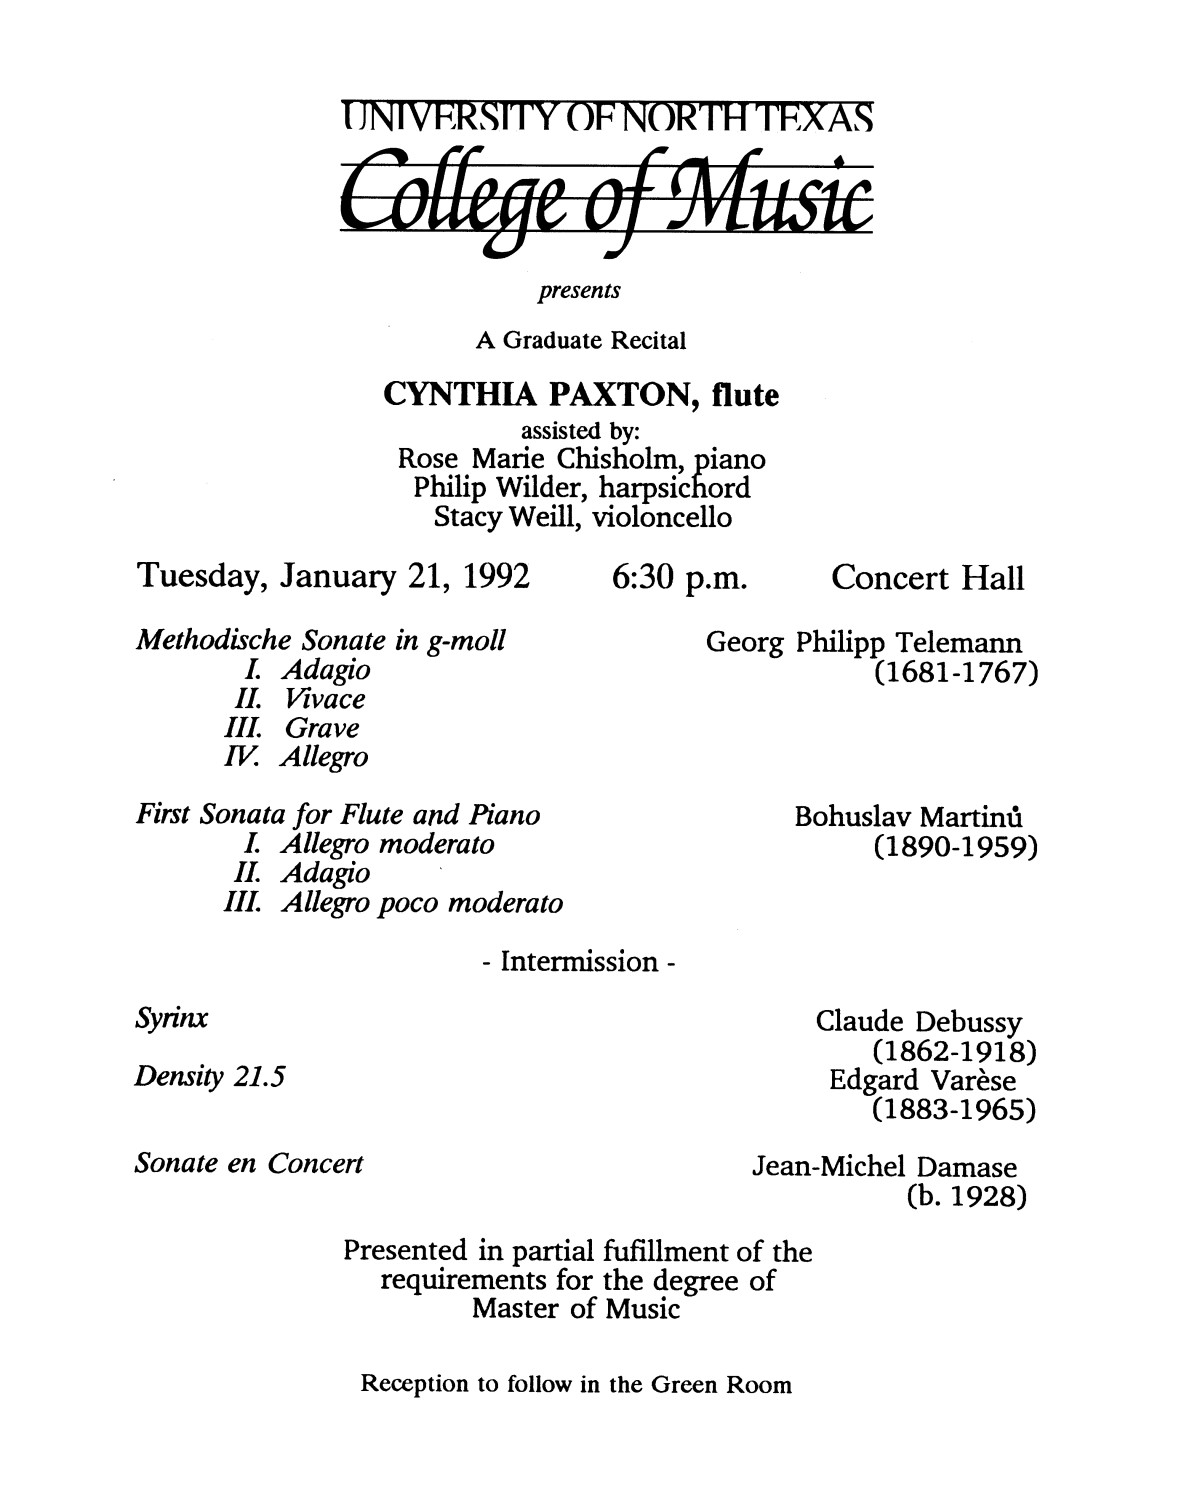 College of Music program book 1991-1992 Student Performances Vol. 2                                                                                                      [Sequence #]: 91 of 310